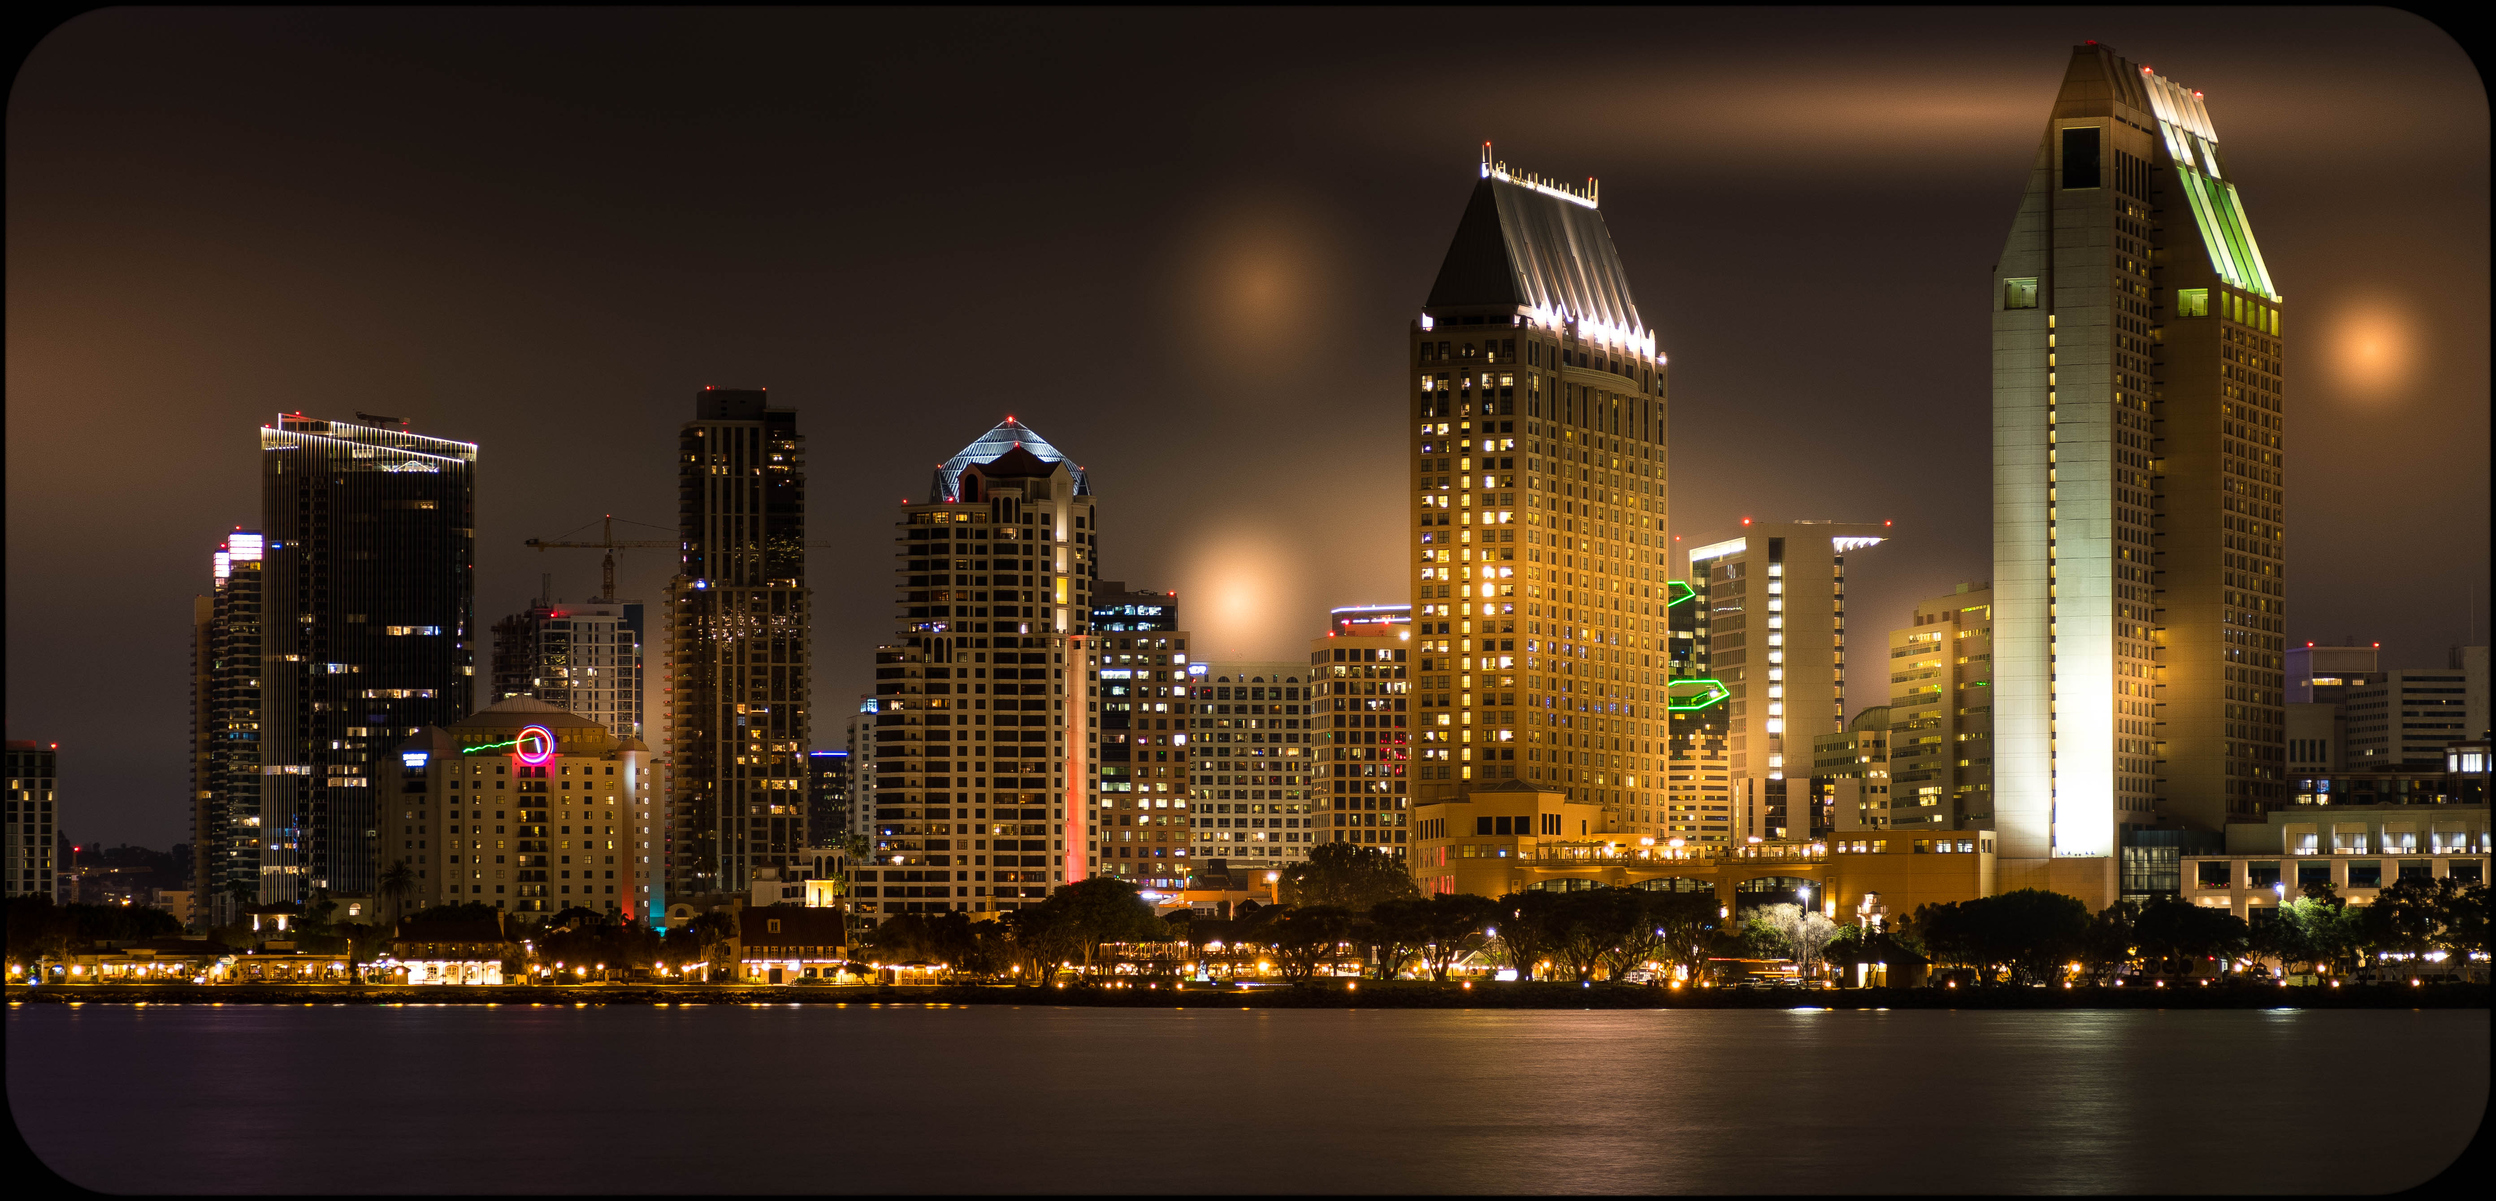 Our Firm - Based in America's Finest City, your Greentenders are located in the heart of San Diego and service cannabis businesses throughout the state of California as well as ancillary businesses nationwide.